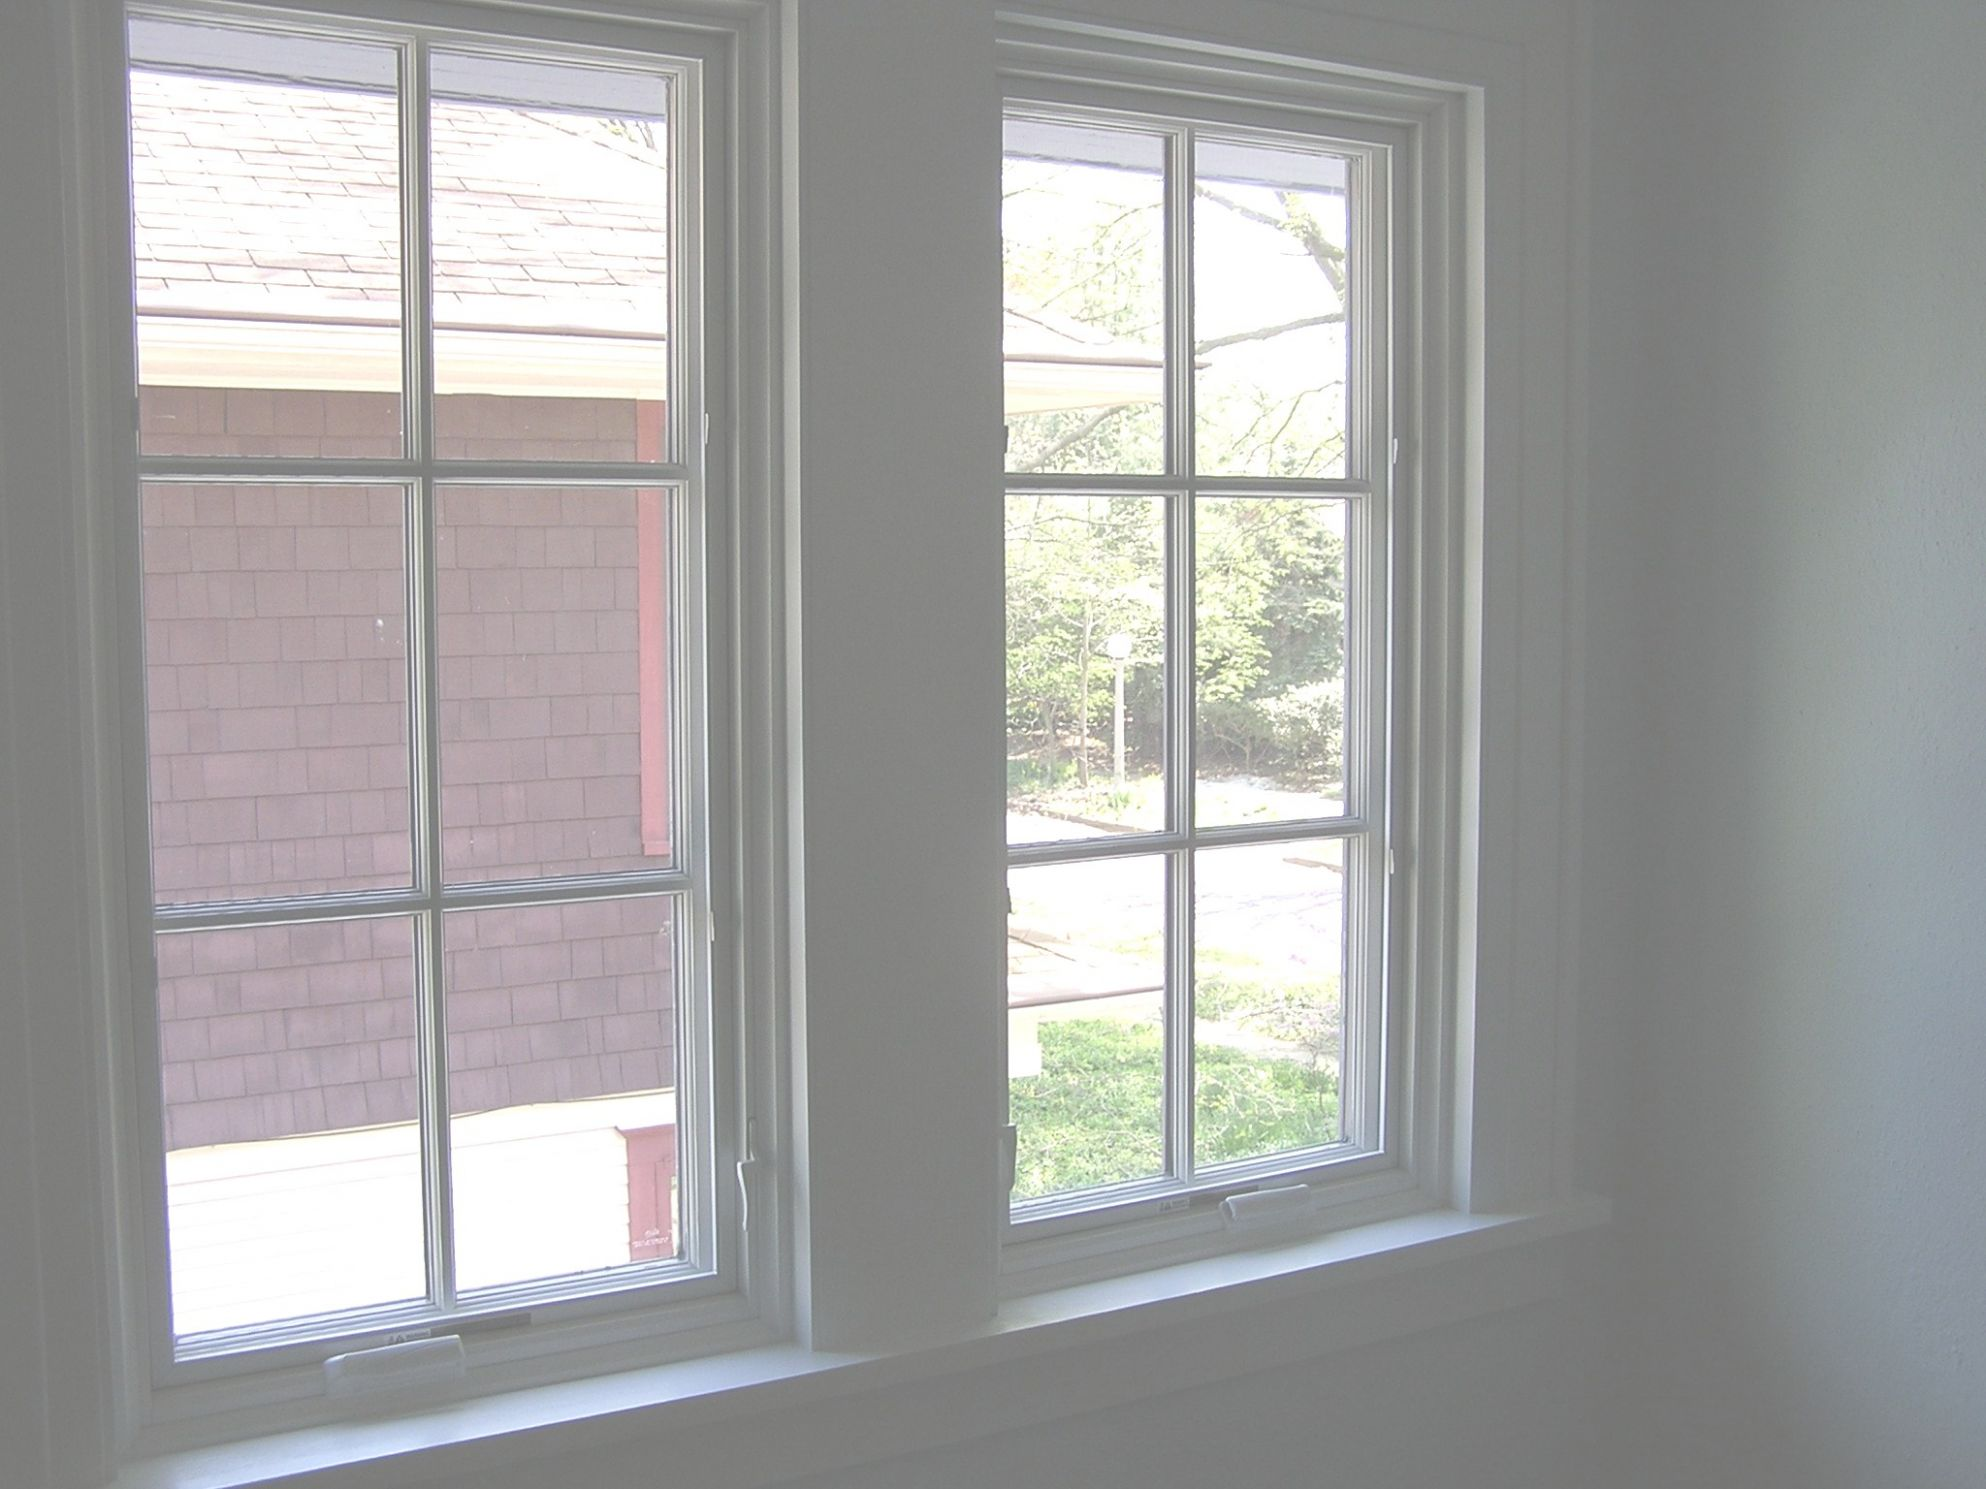 ✓ 12+ Minimalist Window Design Ideas for Your House [Images] - window ideas for new construction